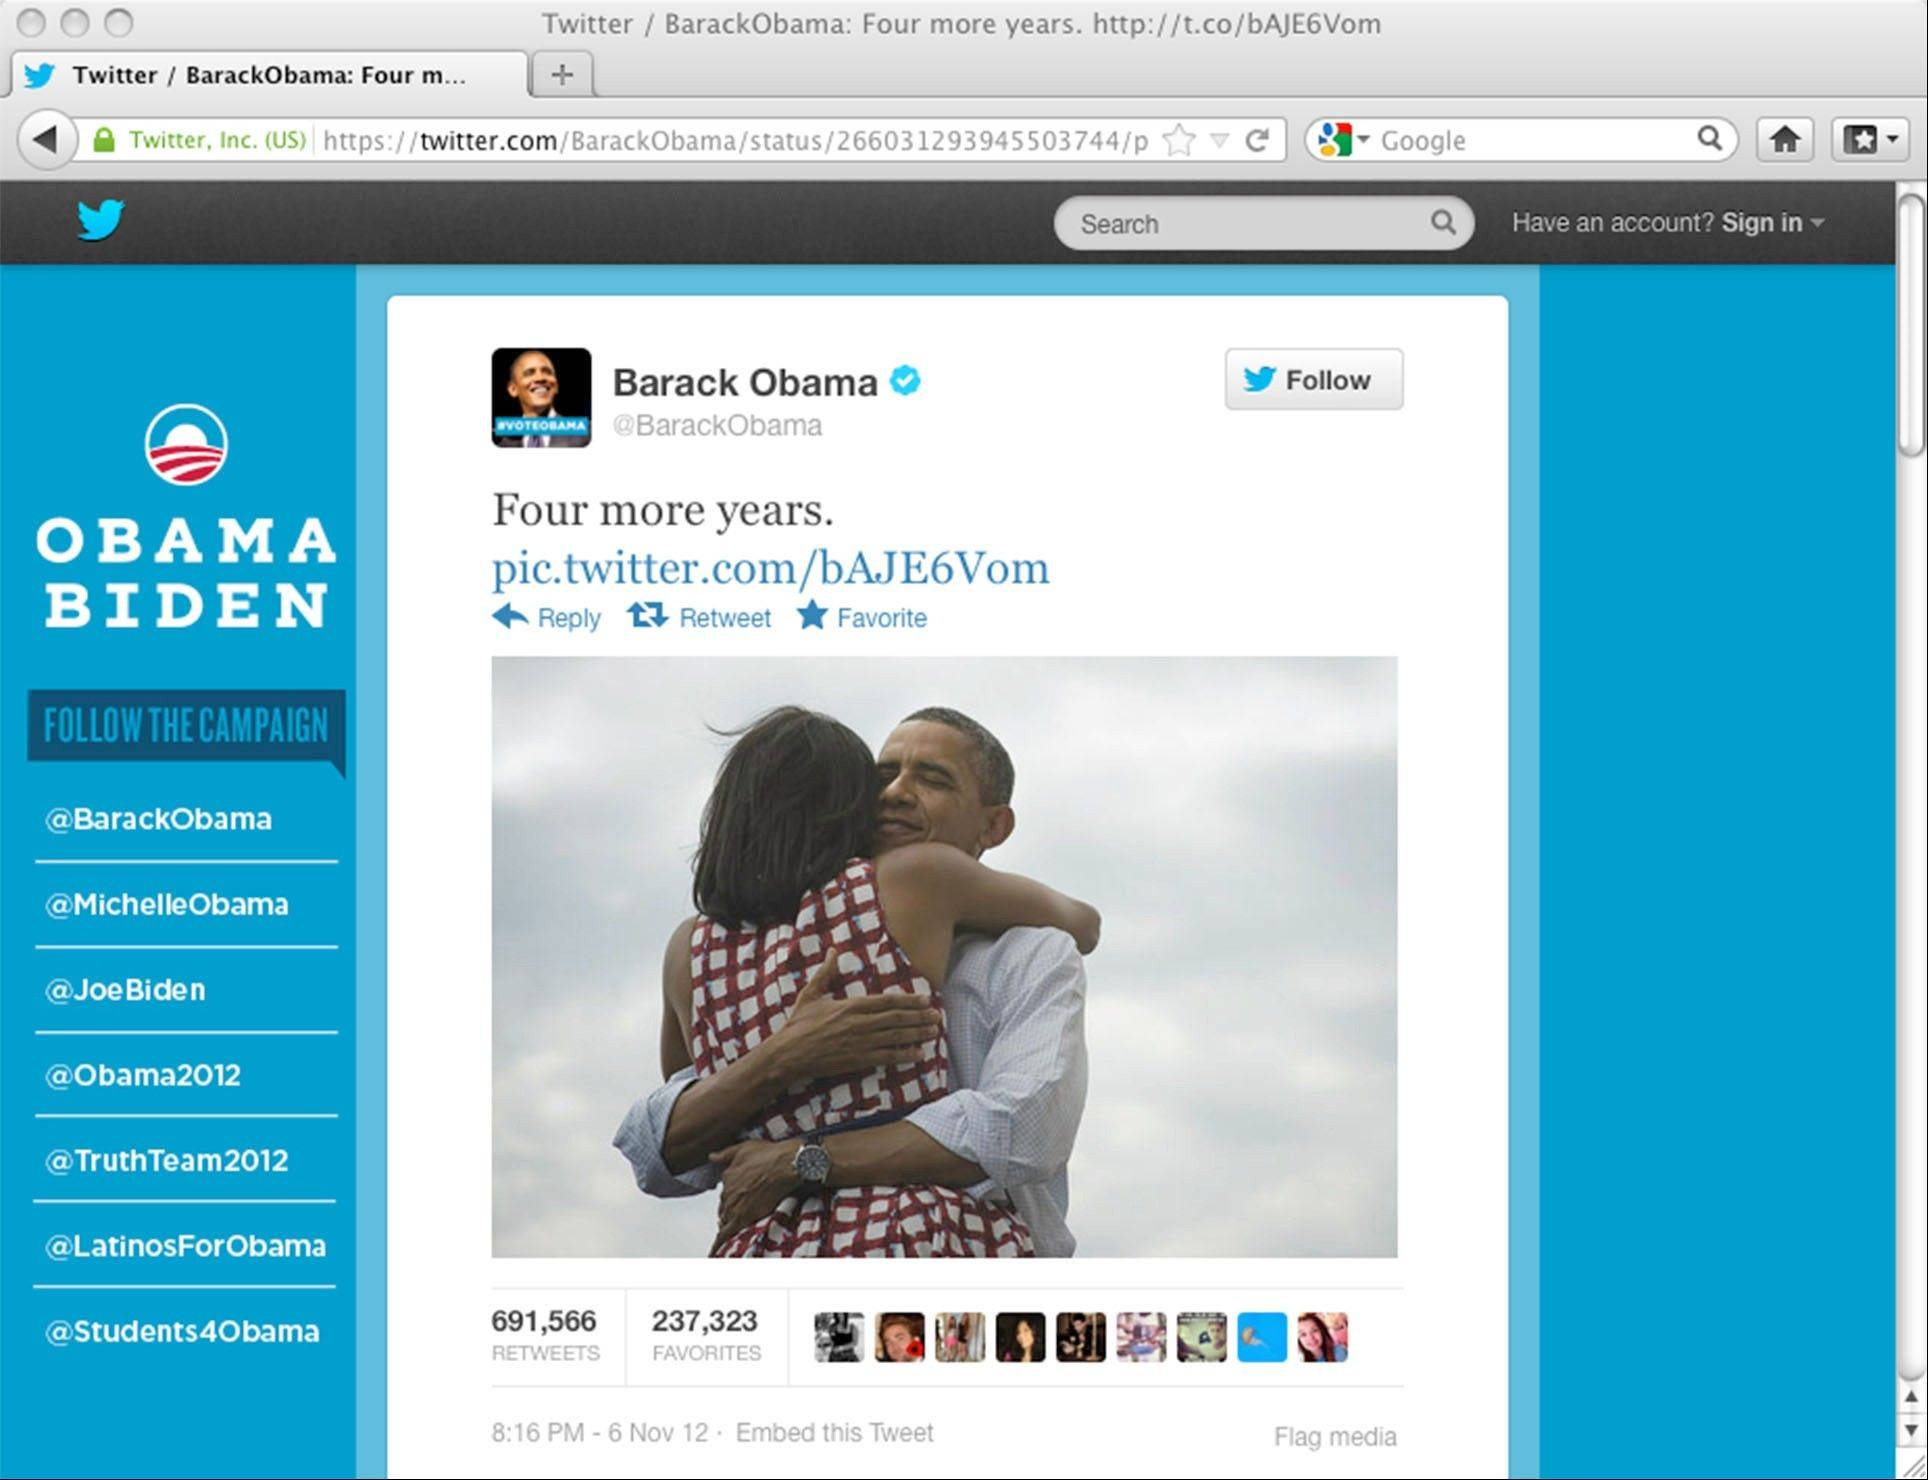 President Barack Obama�s Twitter posting, which read �Four more years� and featured a picture of him hugging his wife, Michelle, became the most retweeted post on Twitter. Unlike many images of political marriage in which the man lays claim to his wife through a symbolically possessive gesture, the embrace between these two people seems mutual and symbolic of a healthy society.